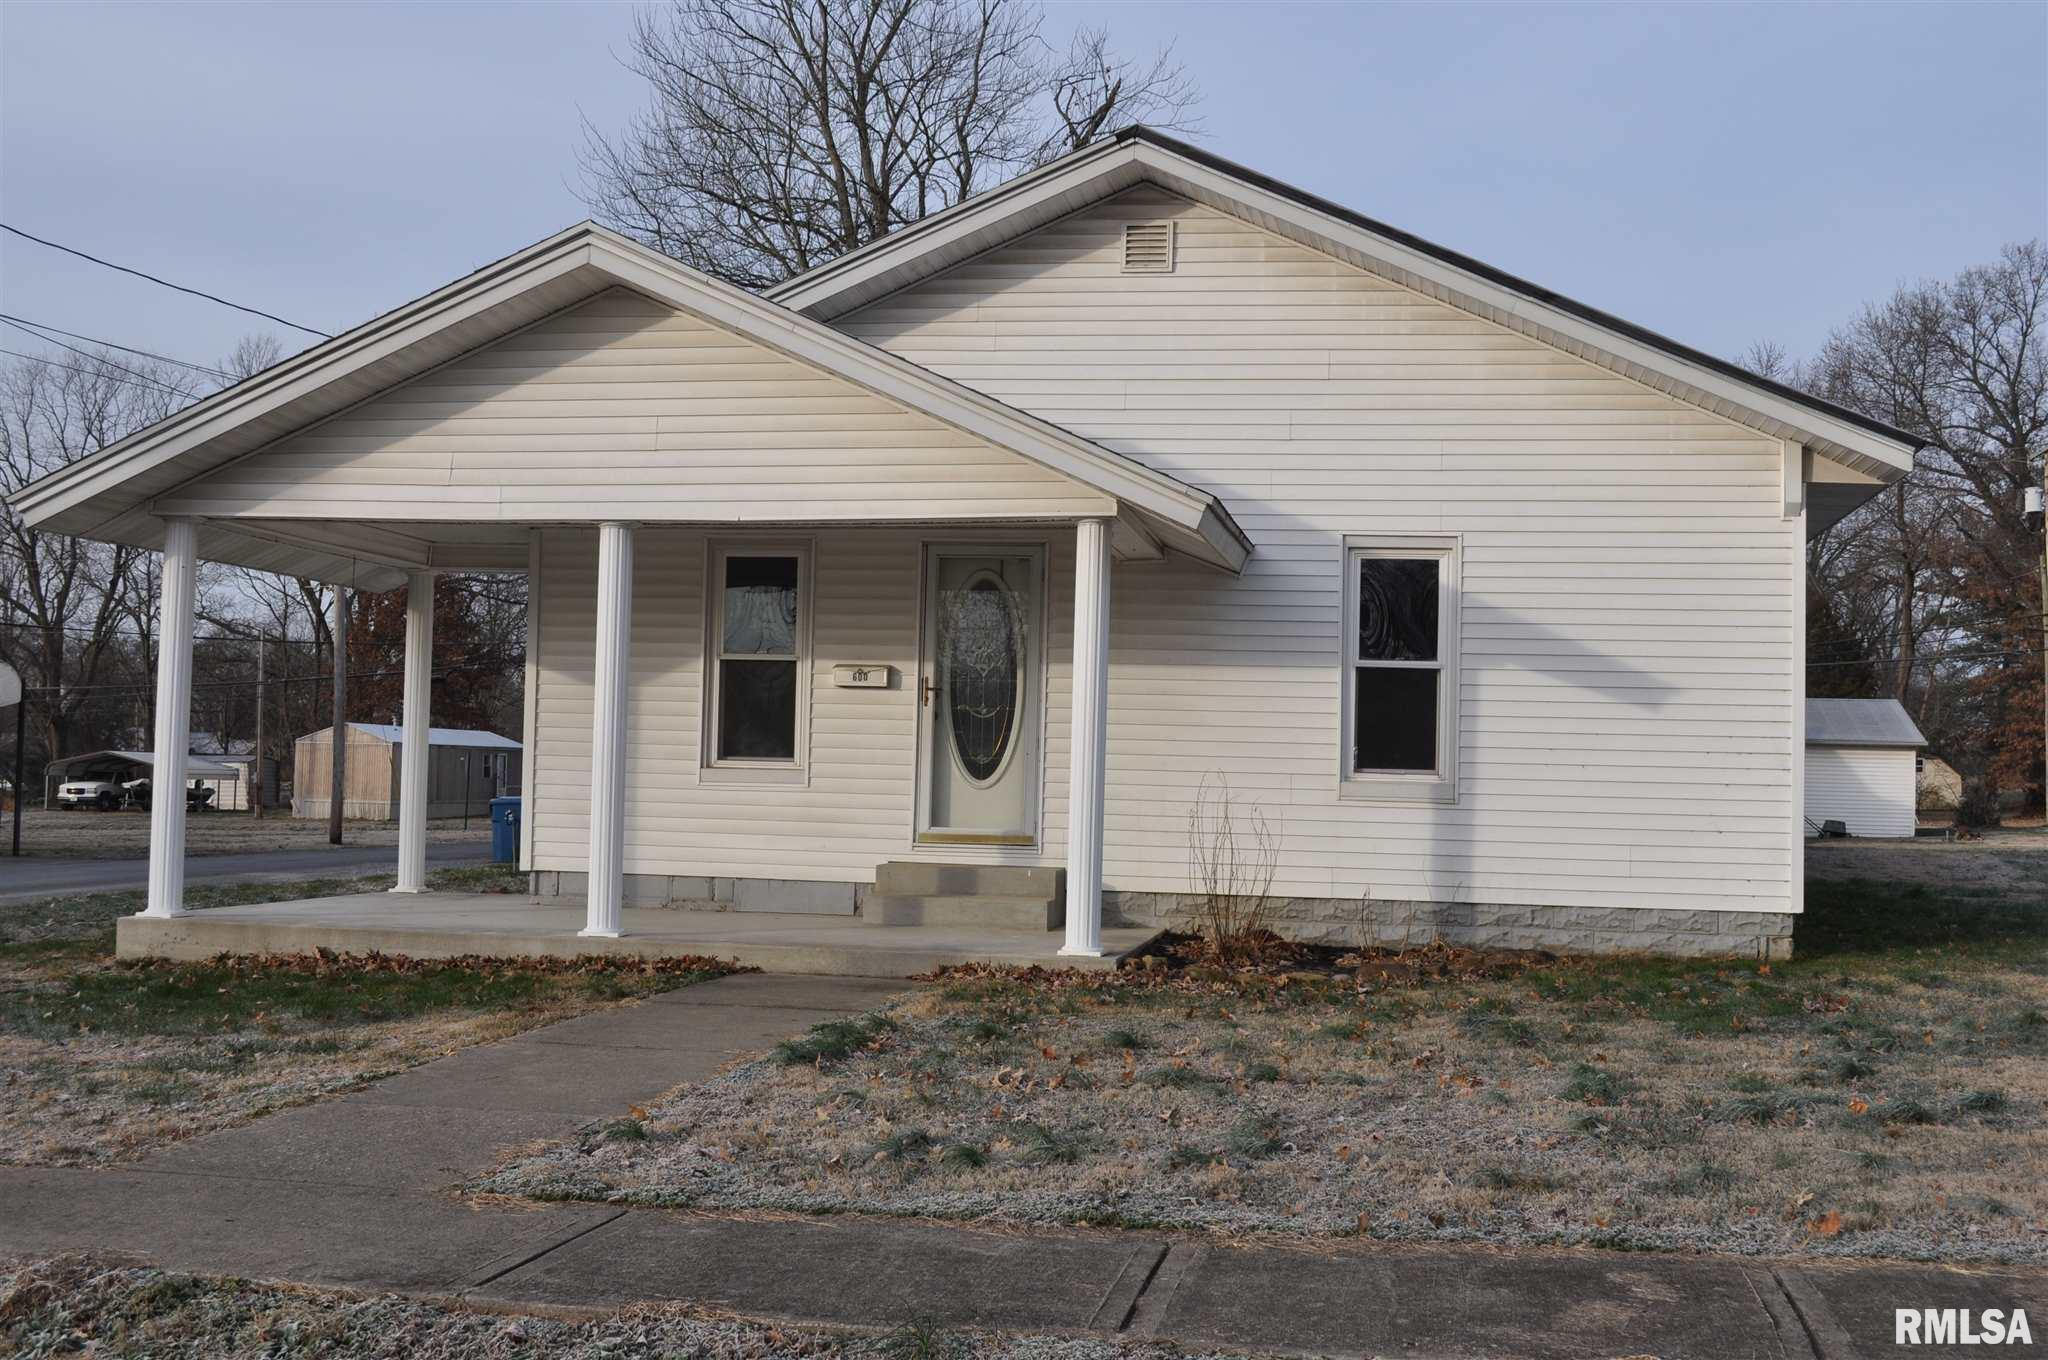 600 N PEARL Property Photo - McLeansboro, IL real estate listing